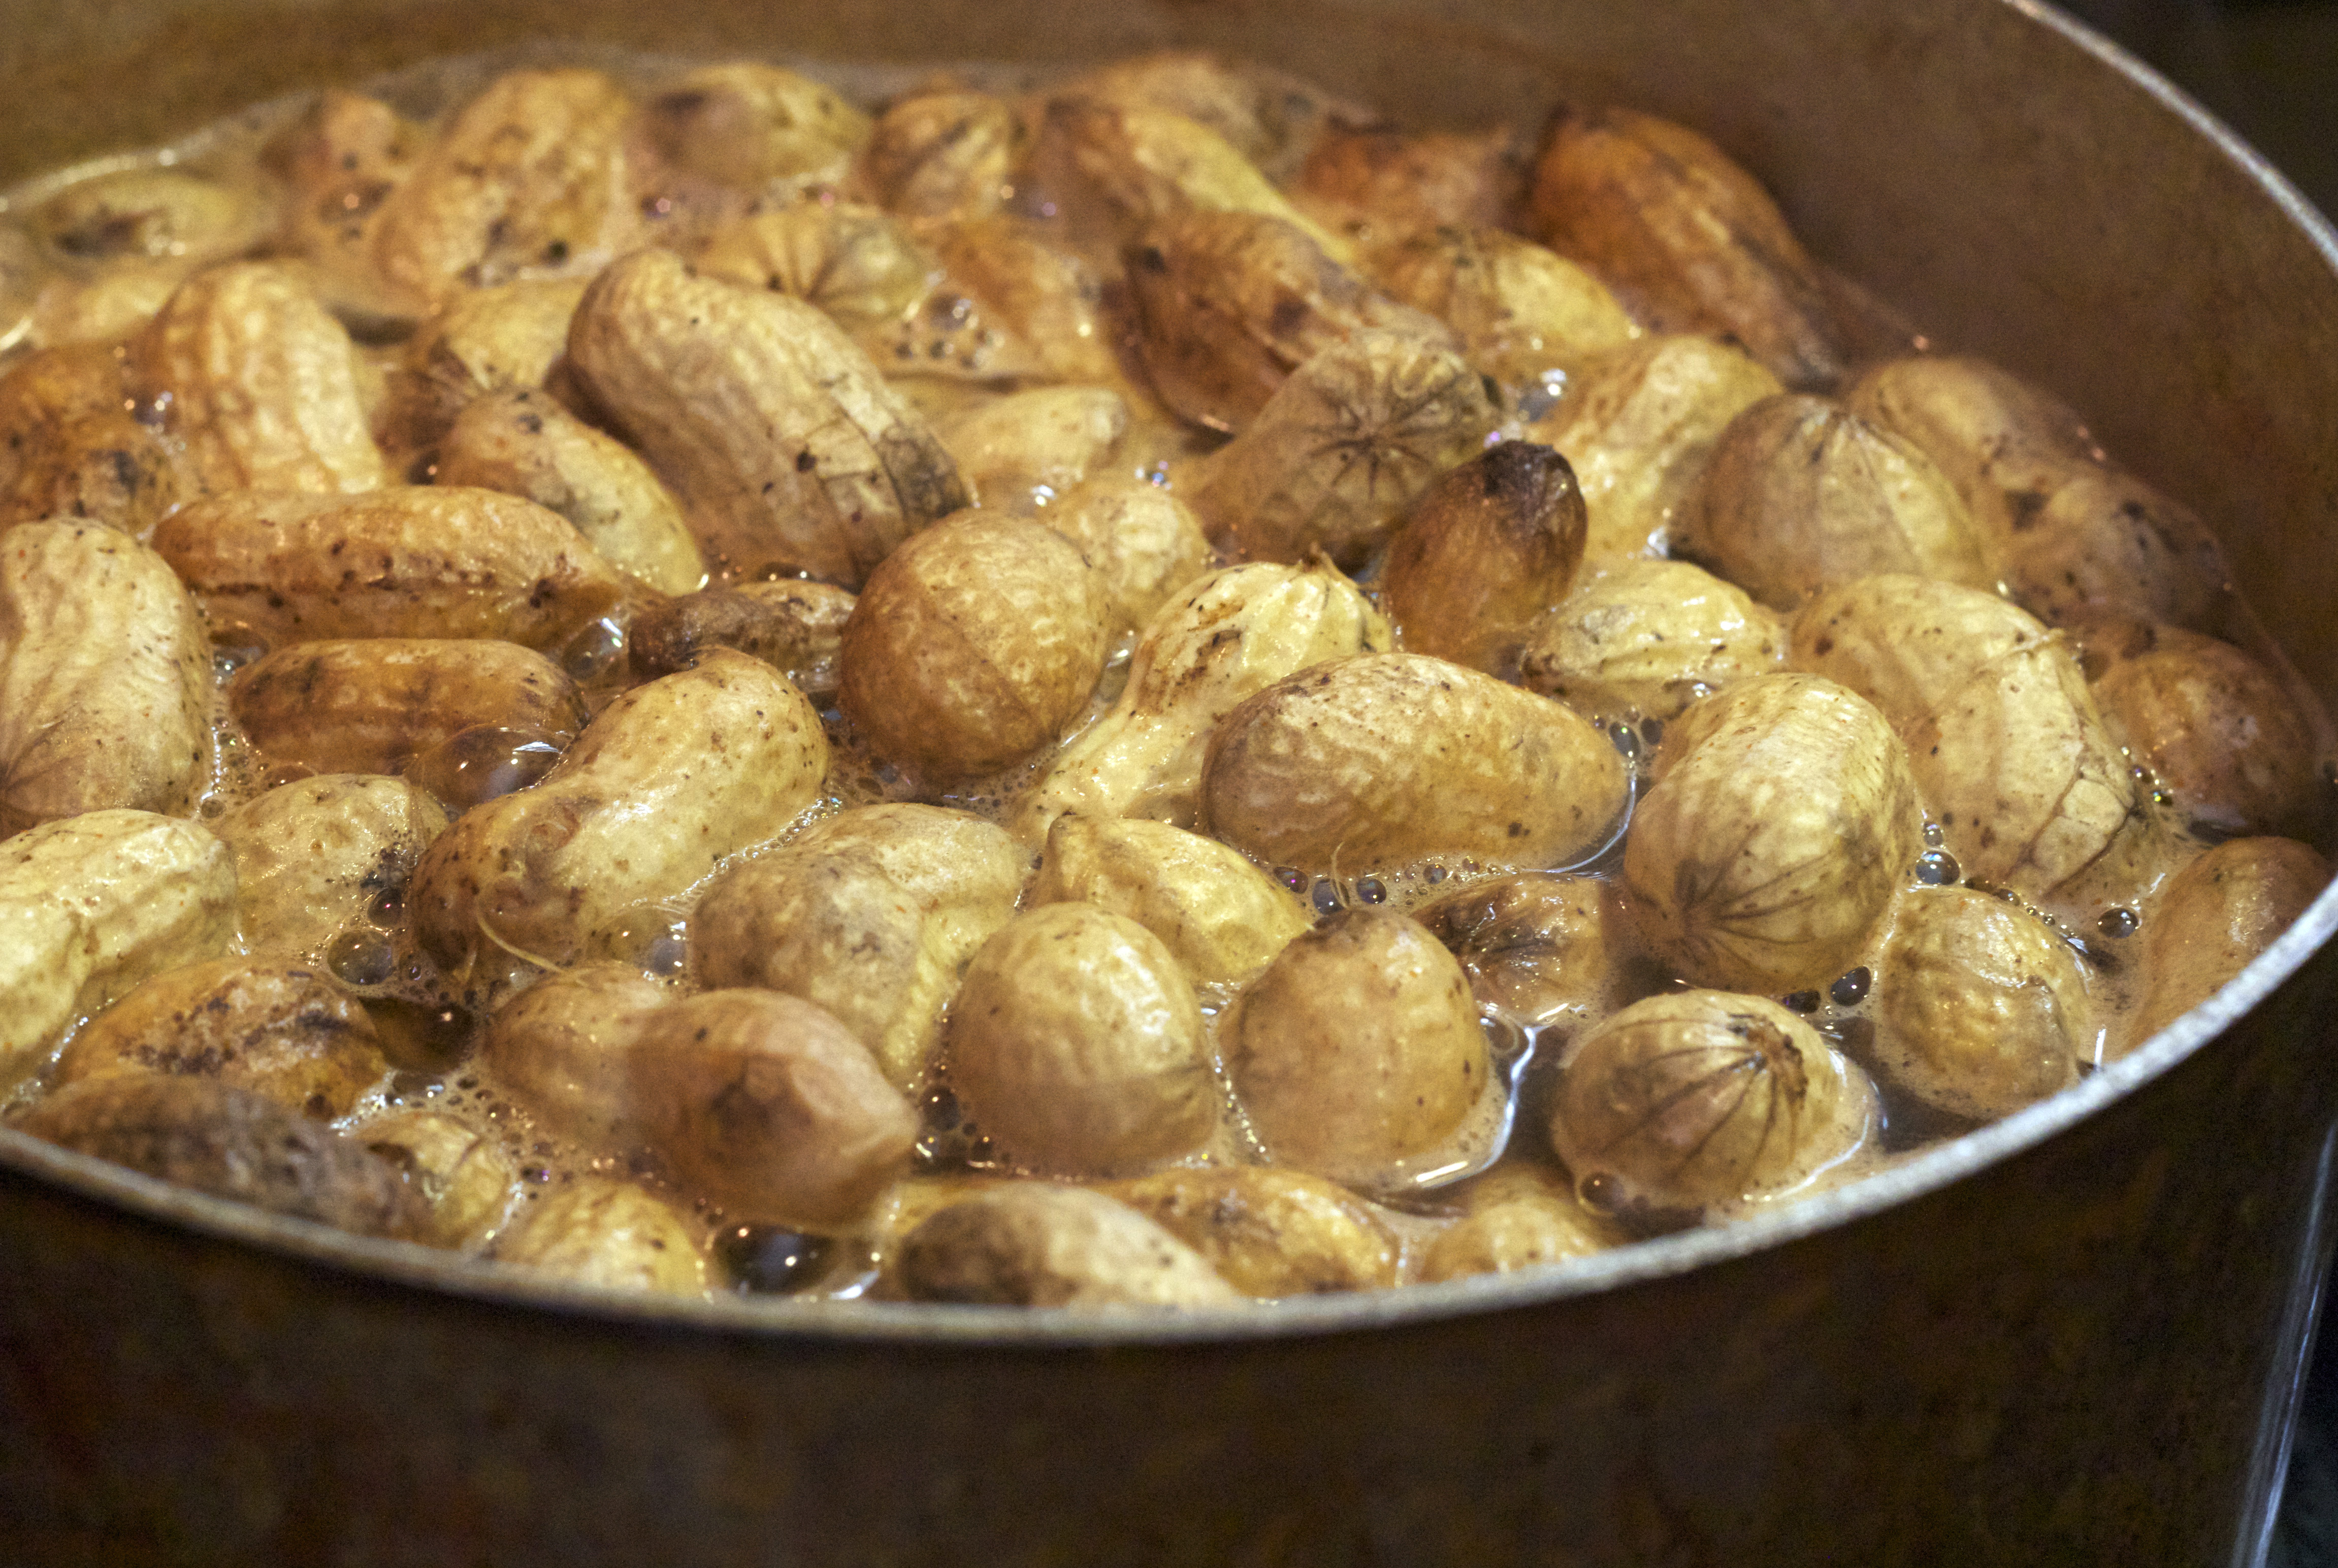 Boiled Peanuts and Country Music | Ladysmokey.com